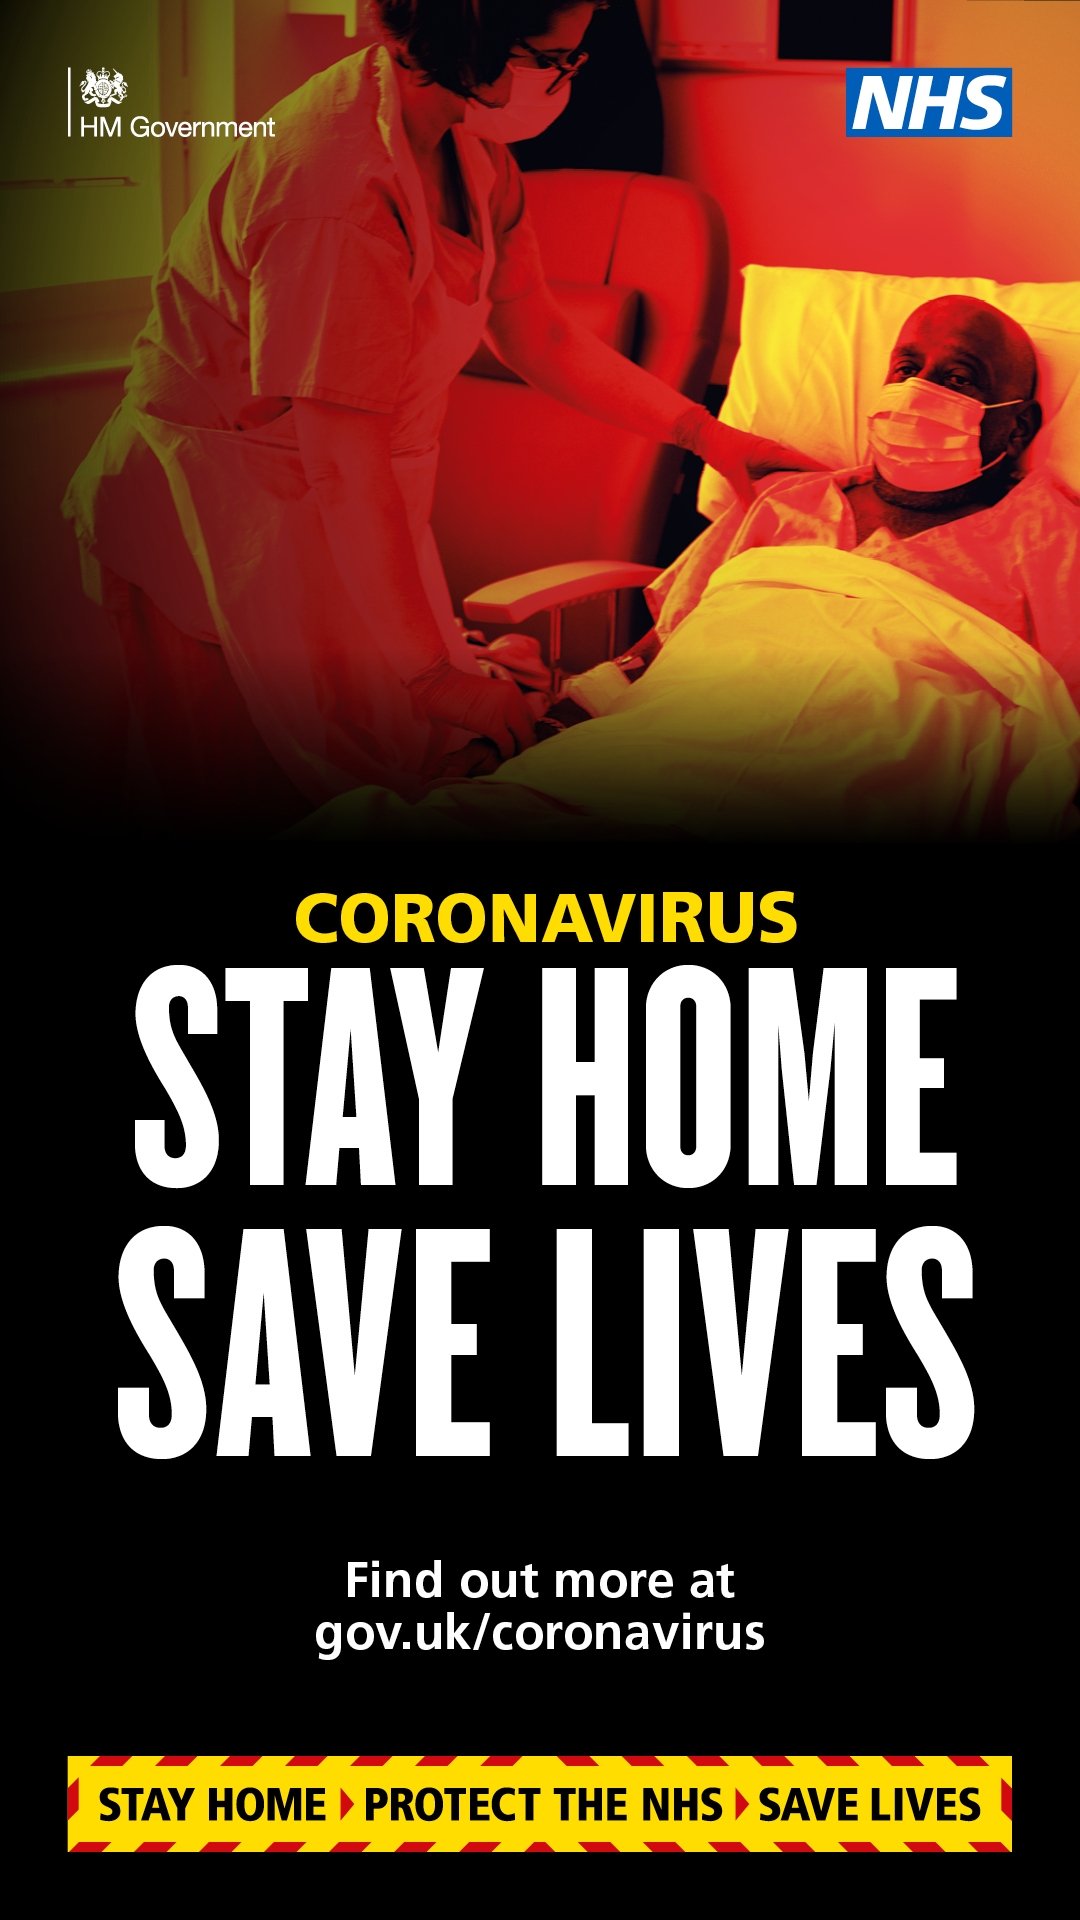 Covid-19 Stay Home Save Lives